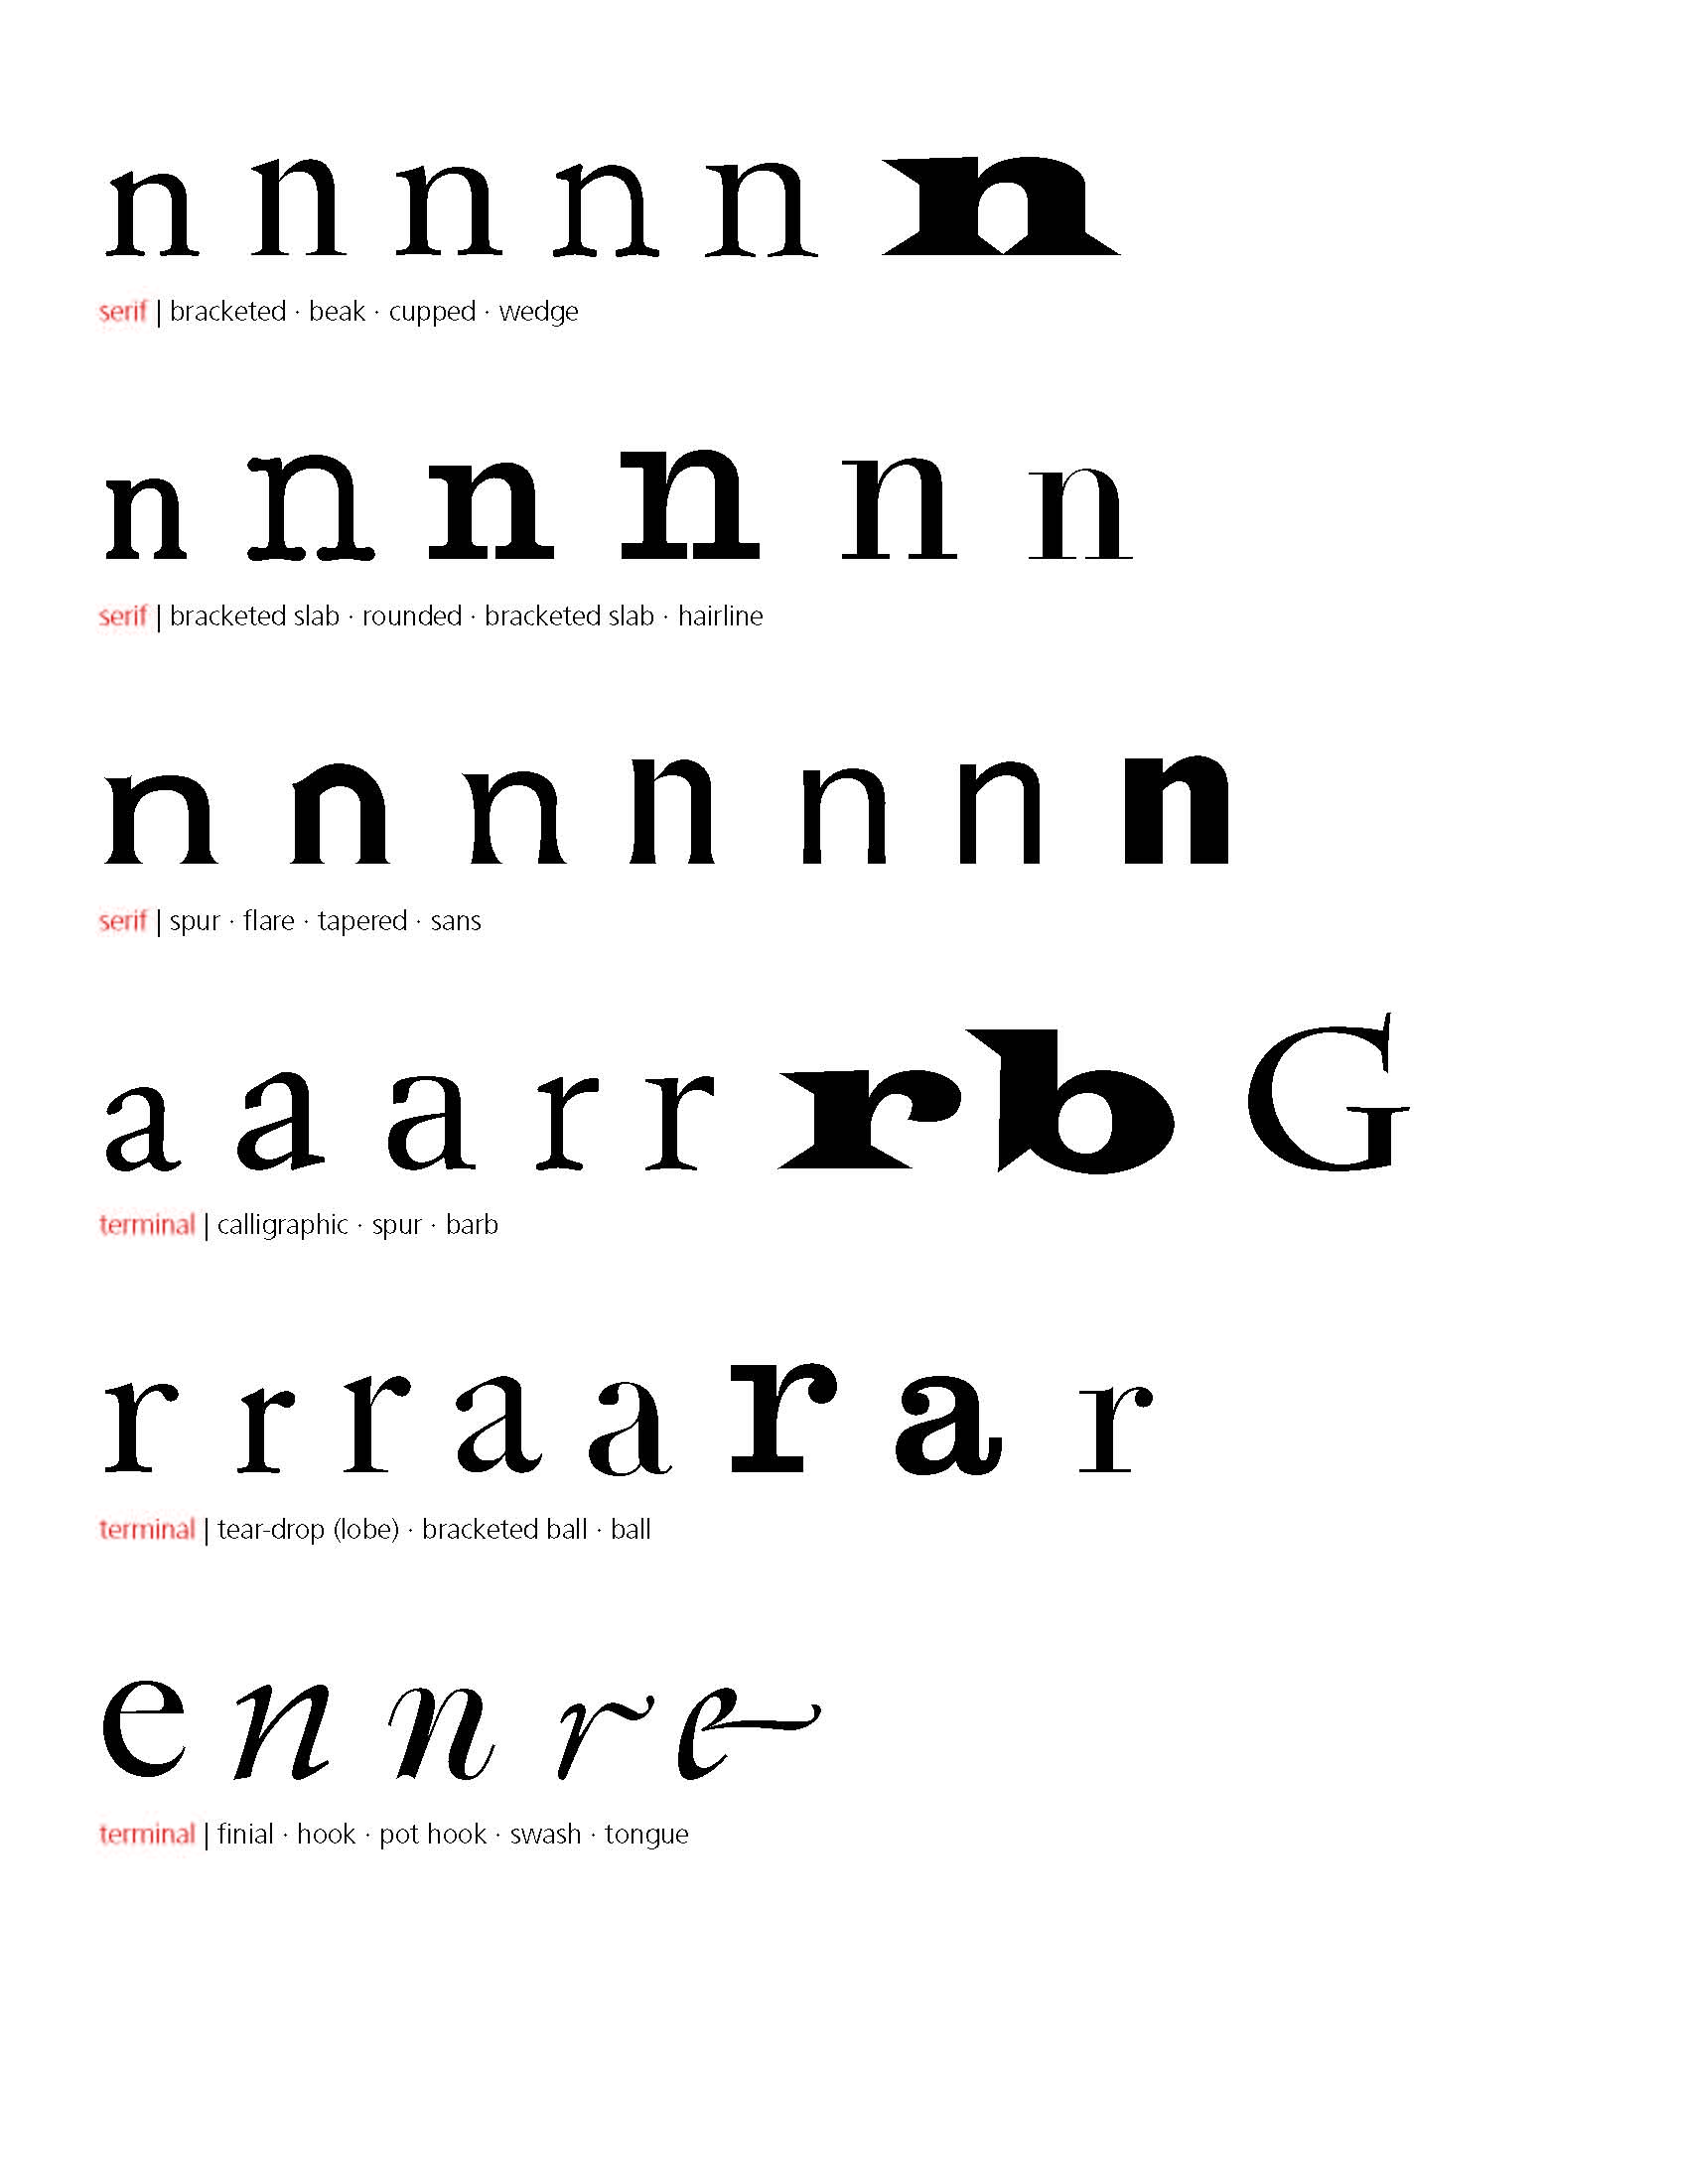 Types of serifs (lowercase).